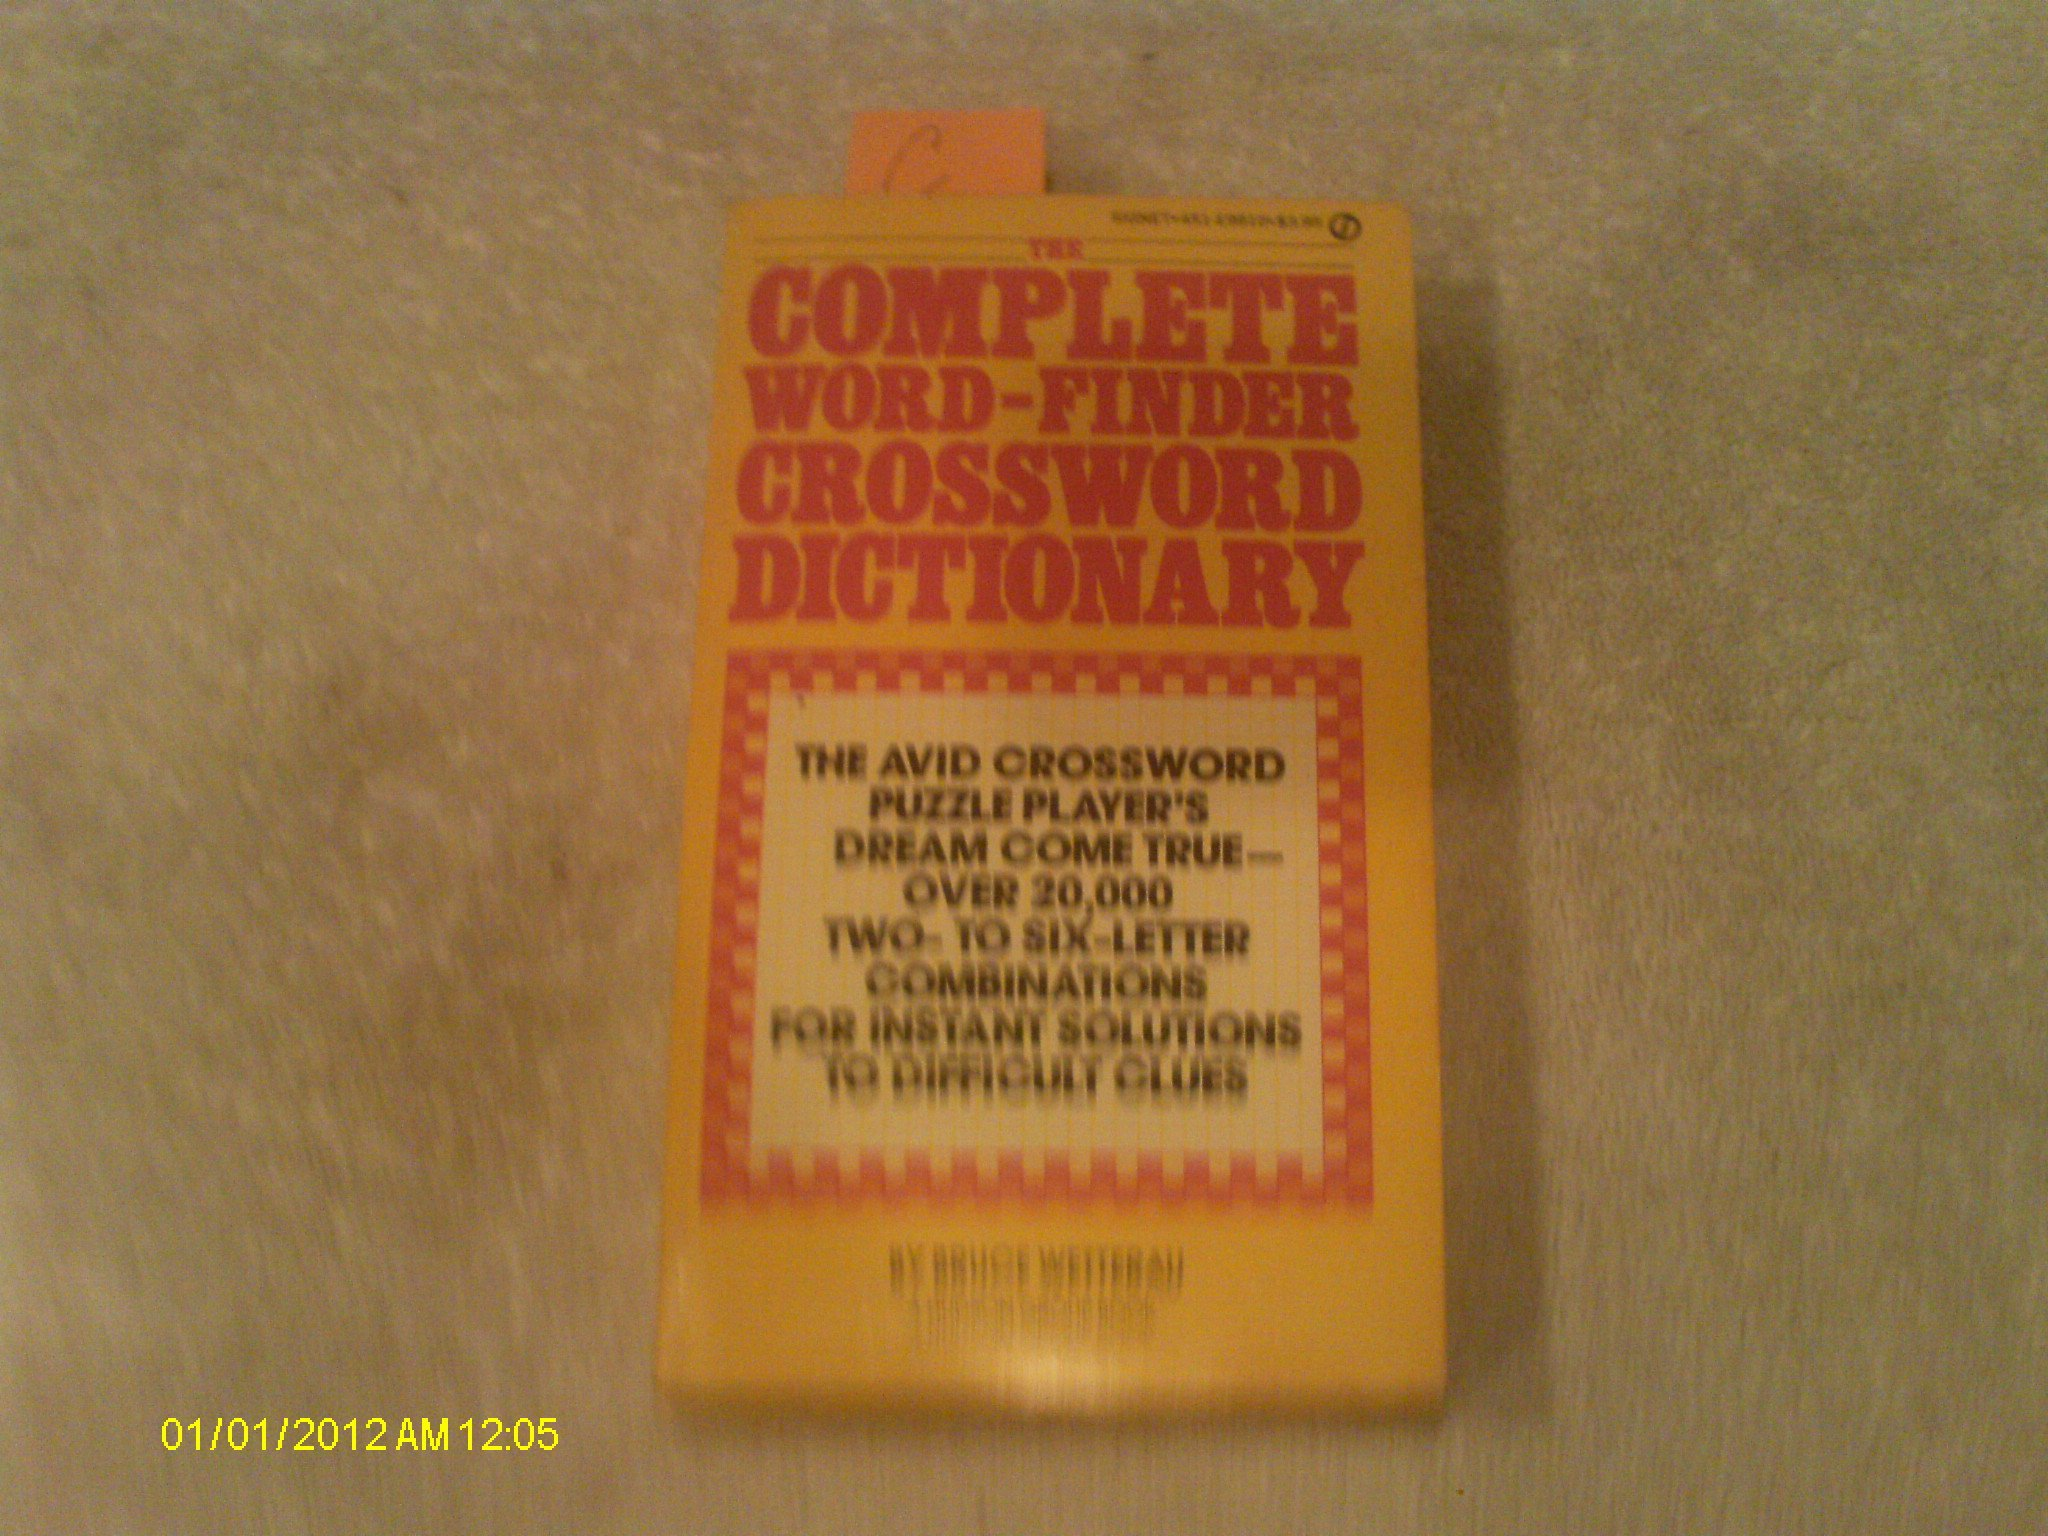 Complete Word-finder Crossword Dictionary (Signet Books): Amazon co